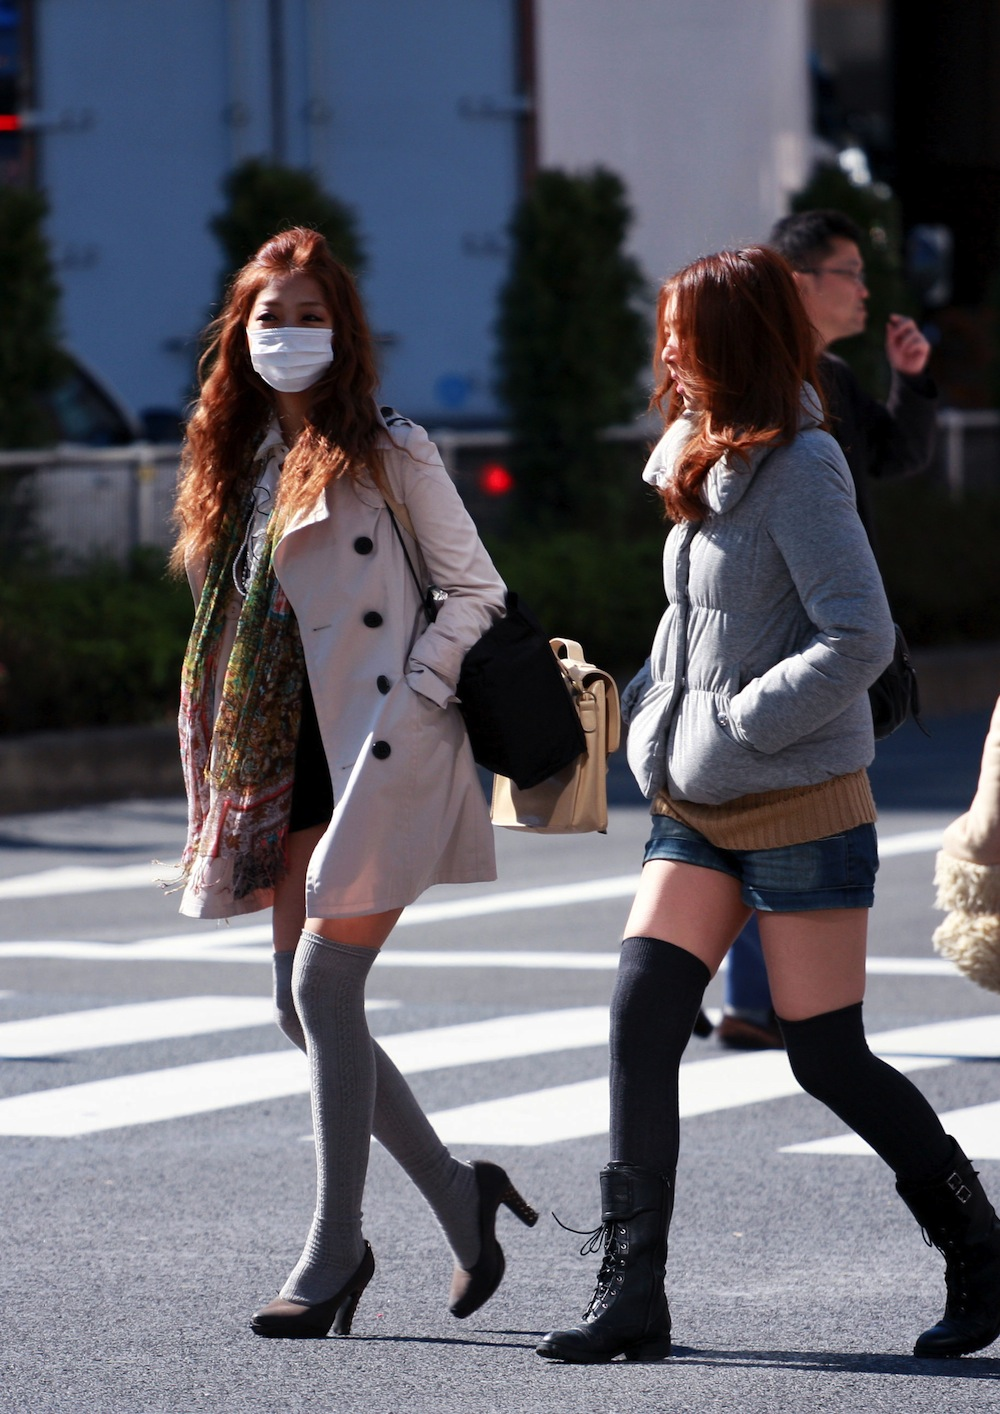 japan_winter_girls